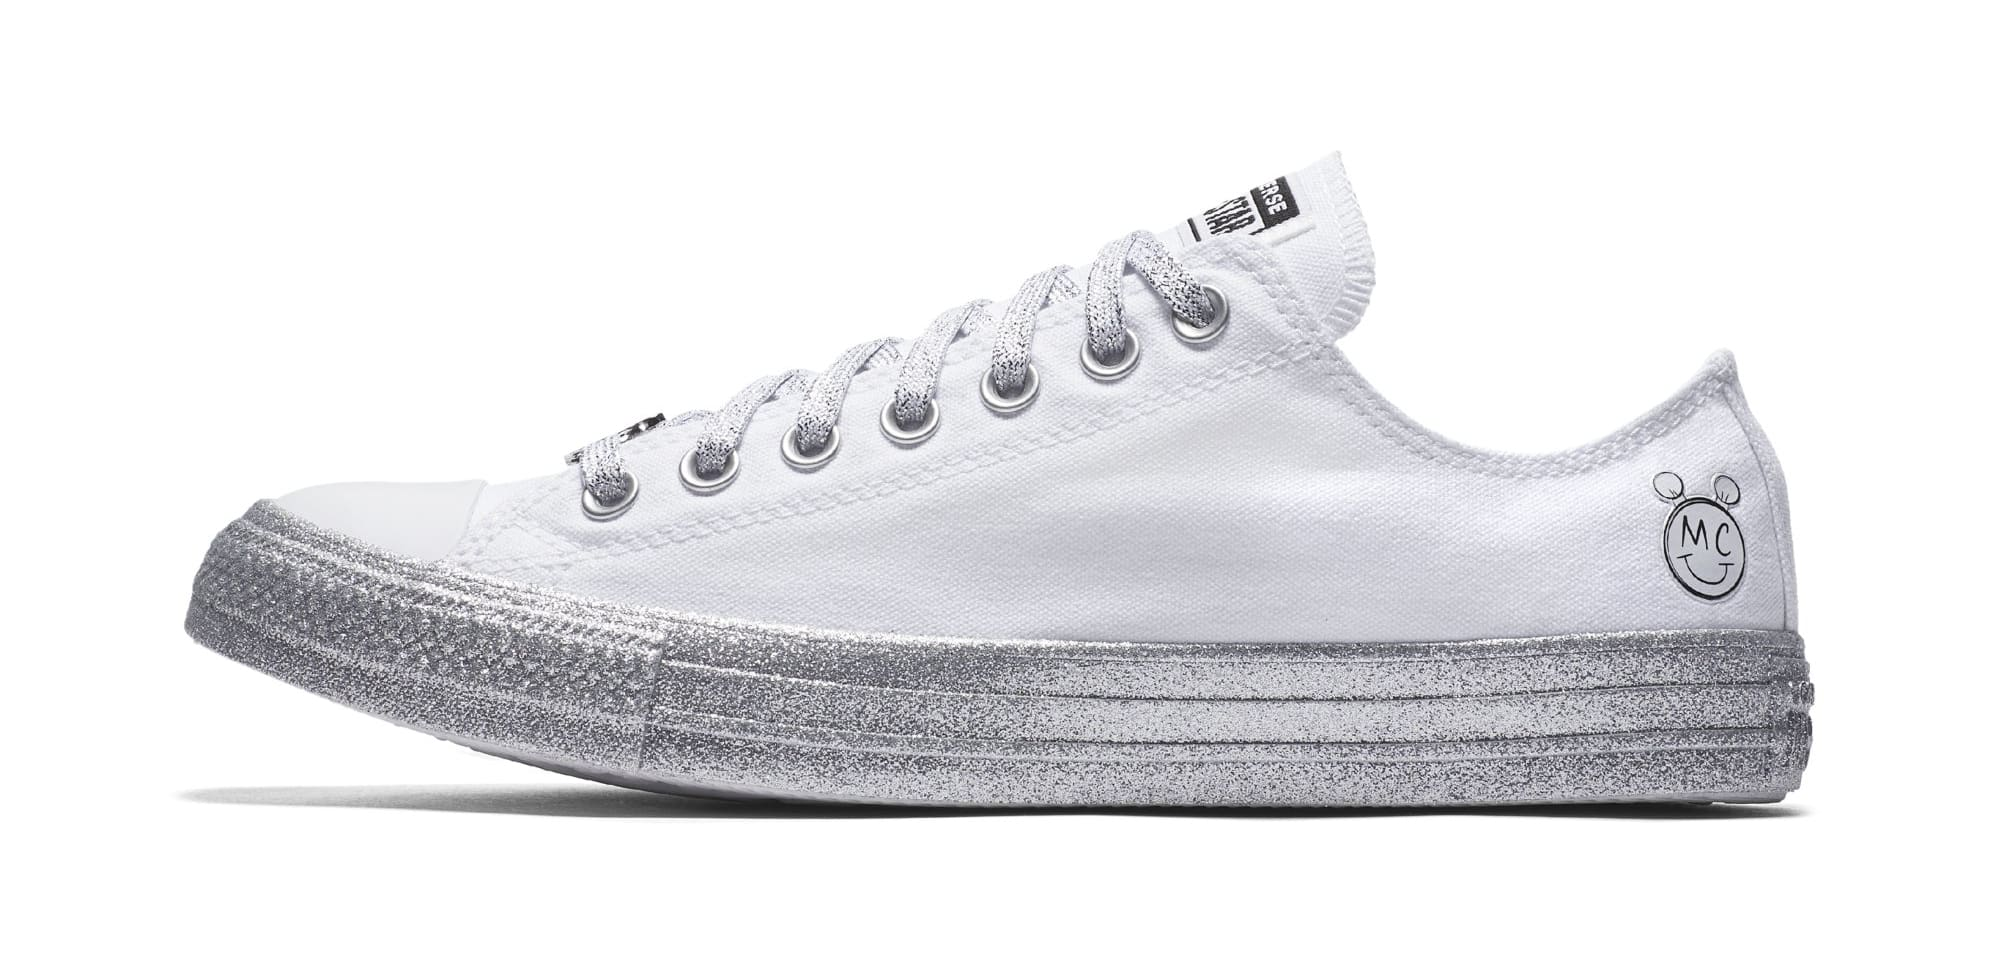 b2e31fbb099a Miley Cyrus x Converse Chuck Taylor All-Star Release Date | Sole Collector